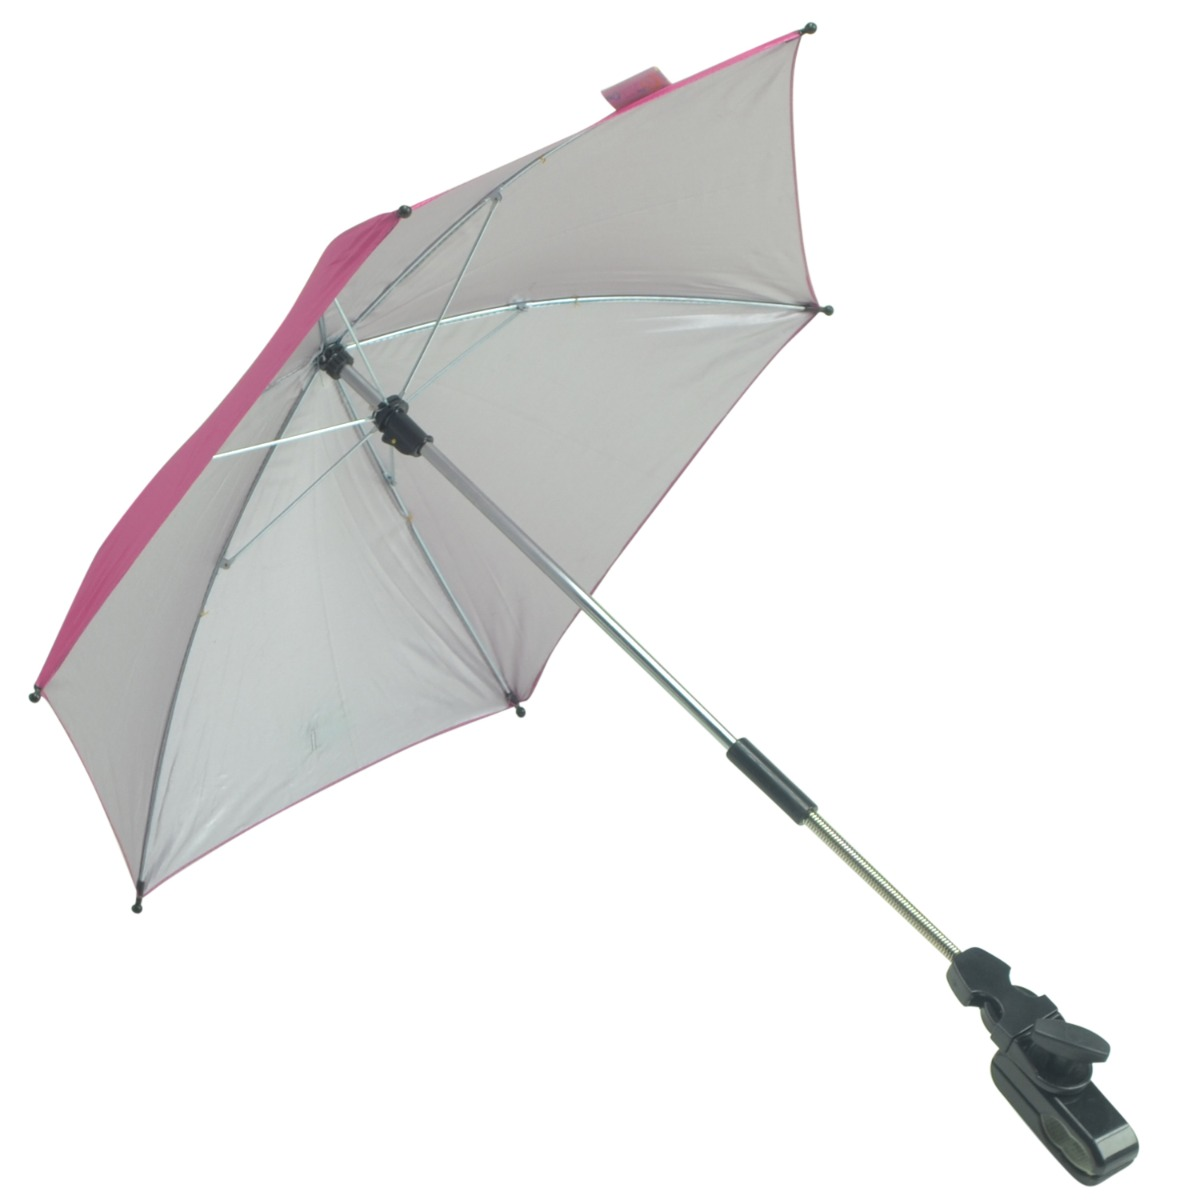 Baby-Parasol-Universal-Sun-Umbrella-Shade-Maker-Canopy-For-Pushchair-Pram-Buggy thumbnail 41